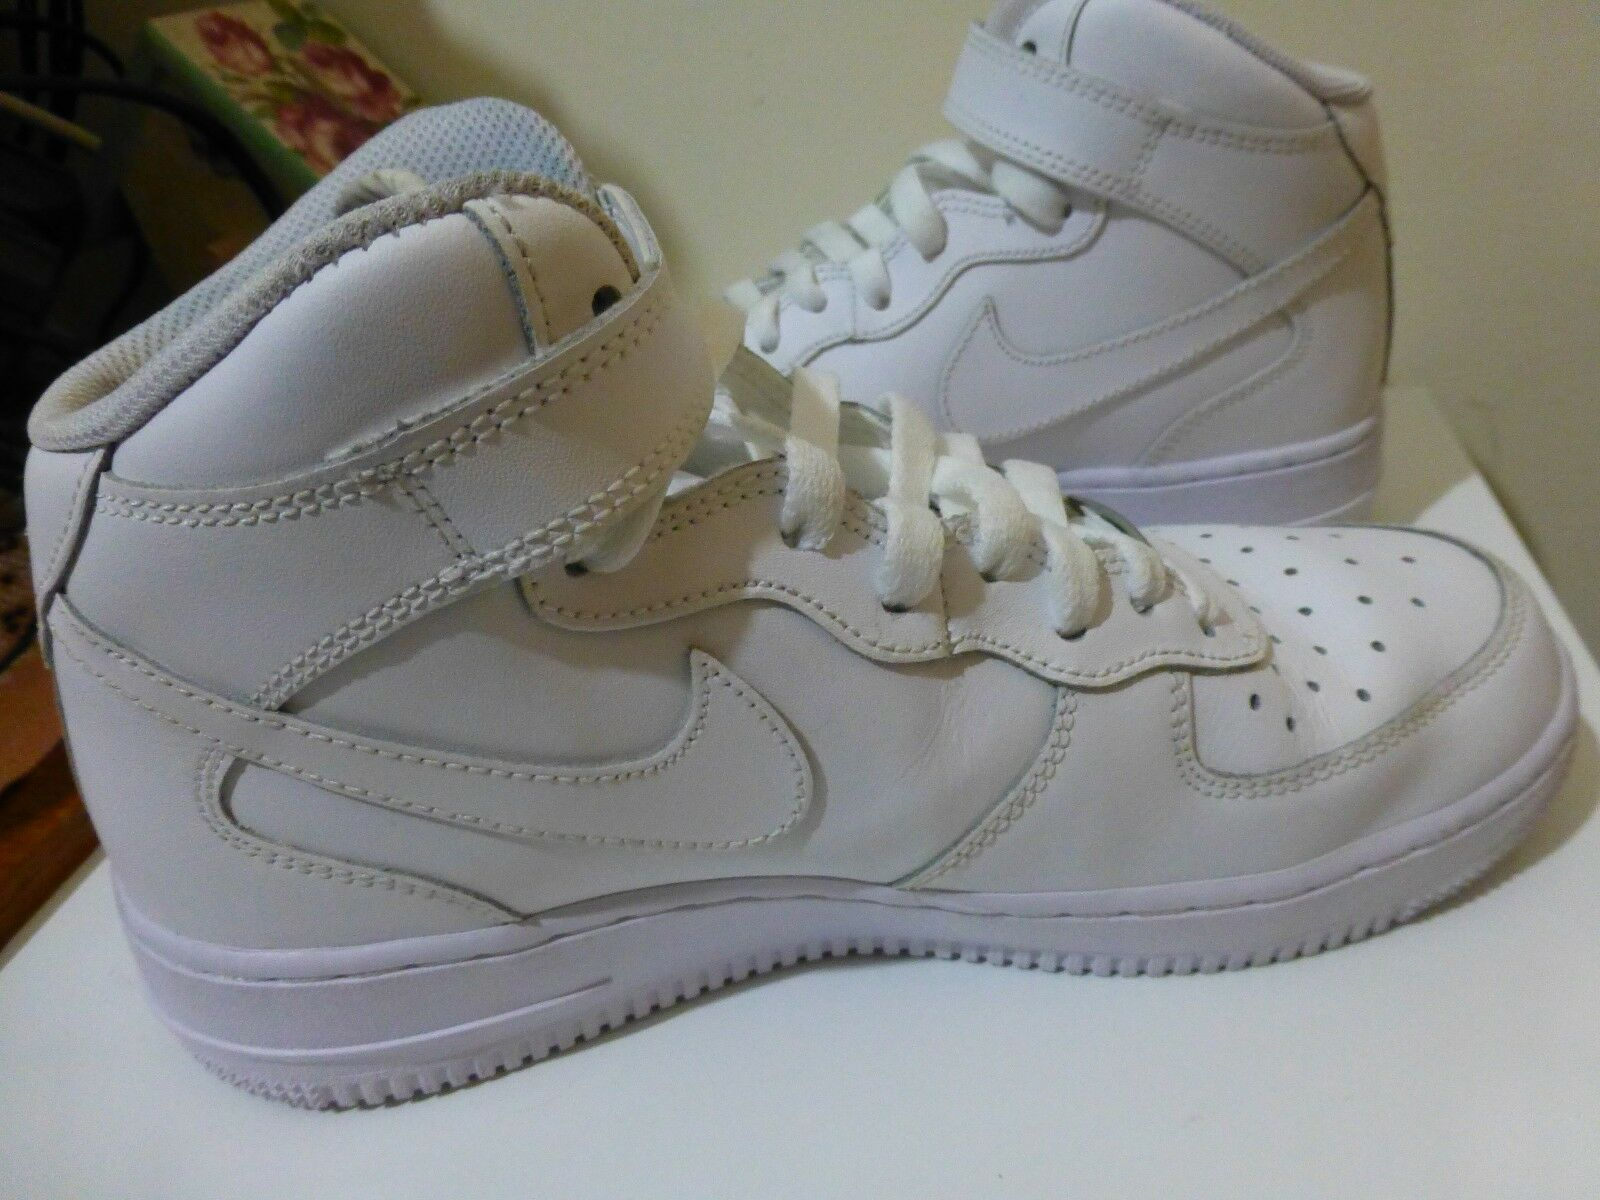 NIKE AIR FORCE1 HIGH 1.2' Sport Shoes US:6.5 / EUR:37.5 / UK:4, Lace-Up & Velcro